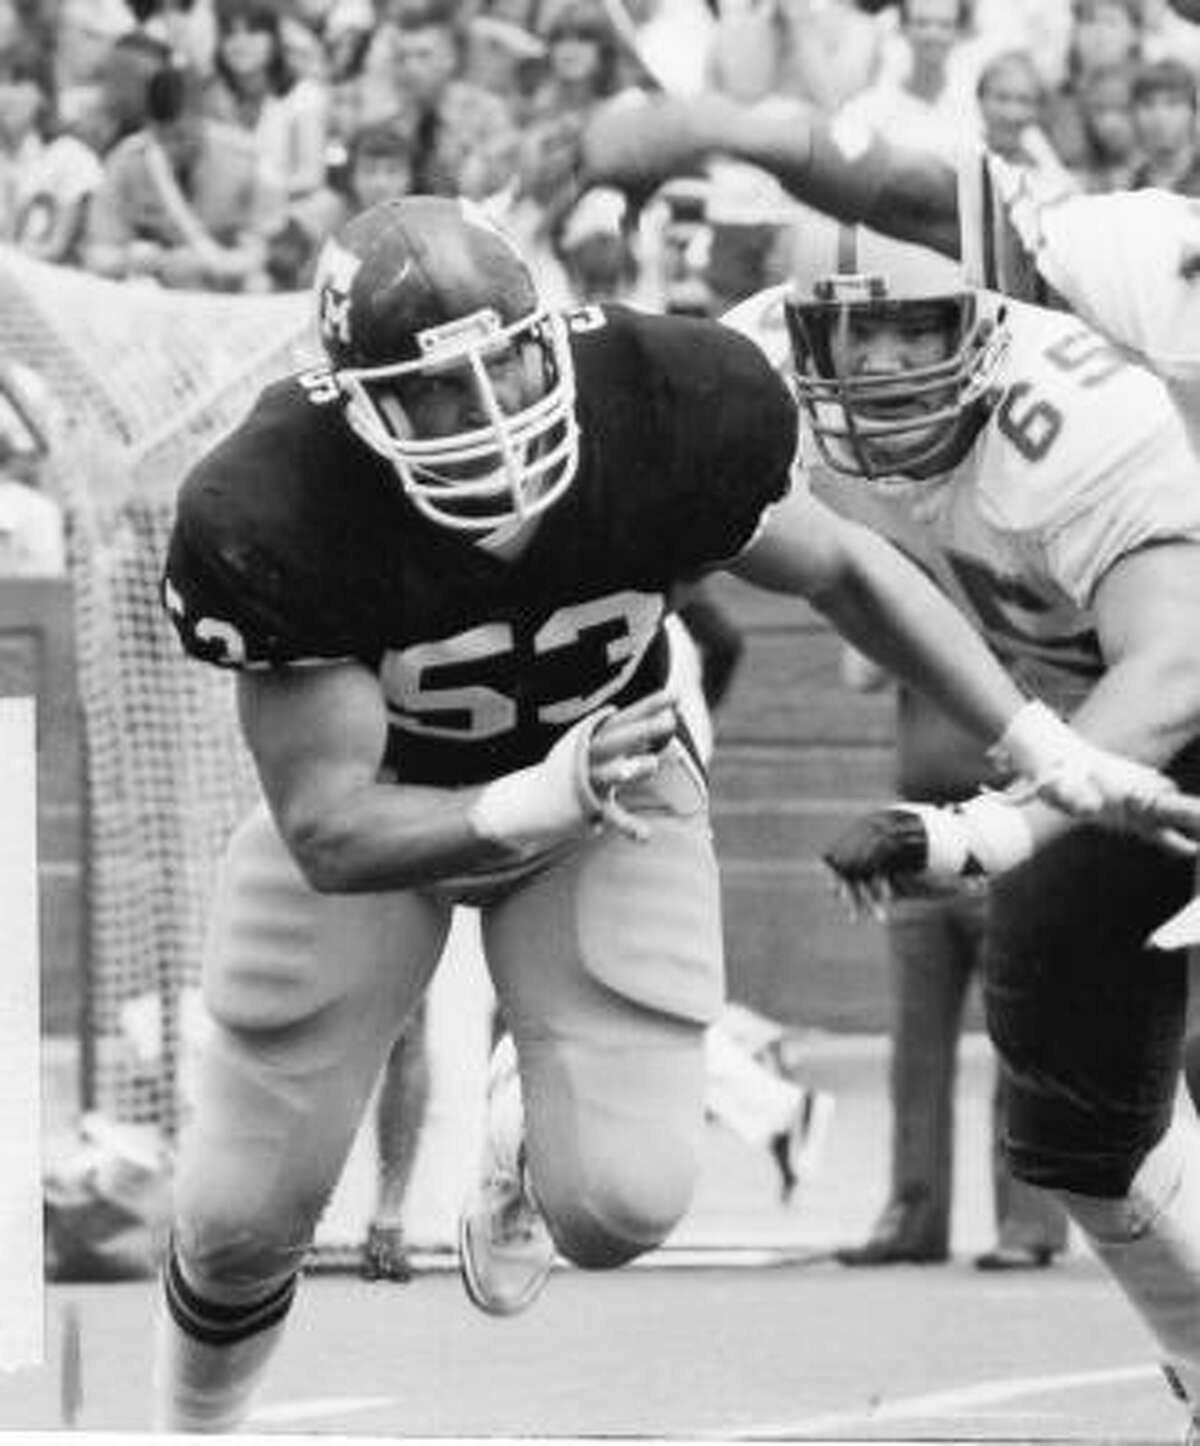 Ray Childress, defensive tackle. Era: (1981-84). The case for: Childress anchored the 1984 A&M defense that ranked fifth nationally against the pass, recording 124 tackles and 10 sacks his senior season.